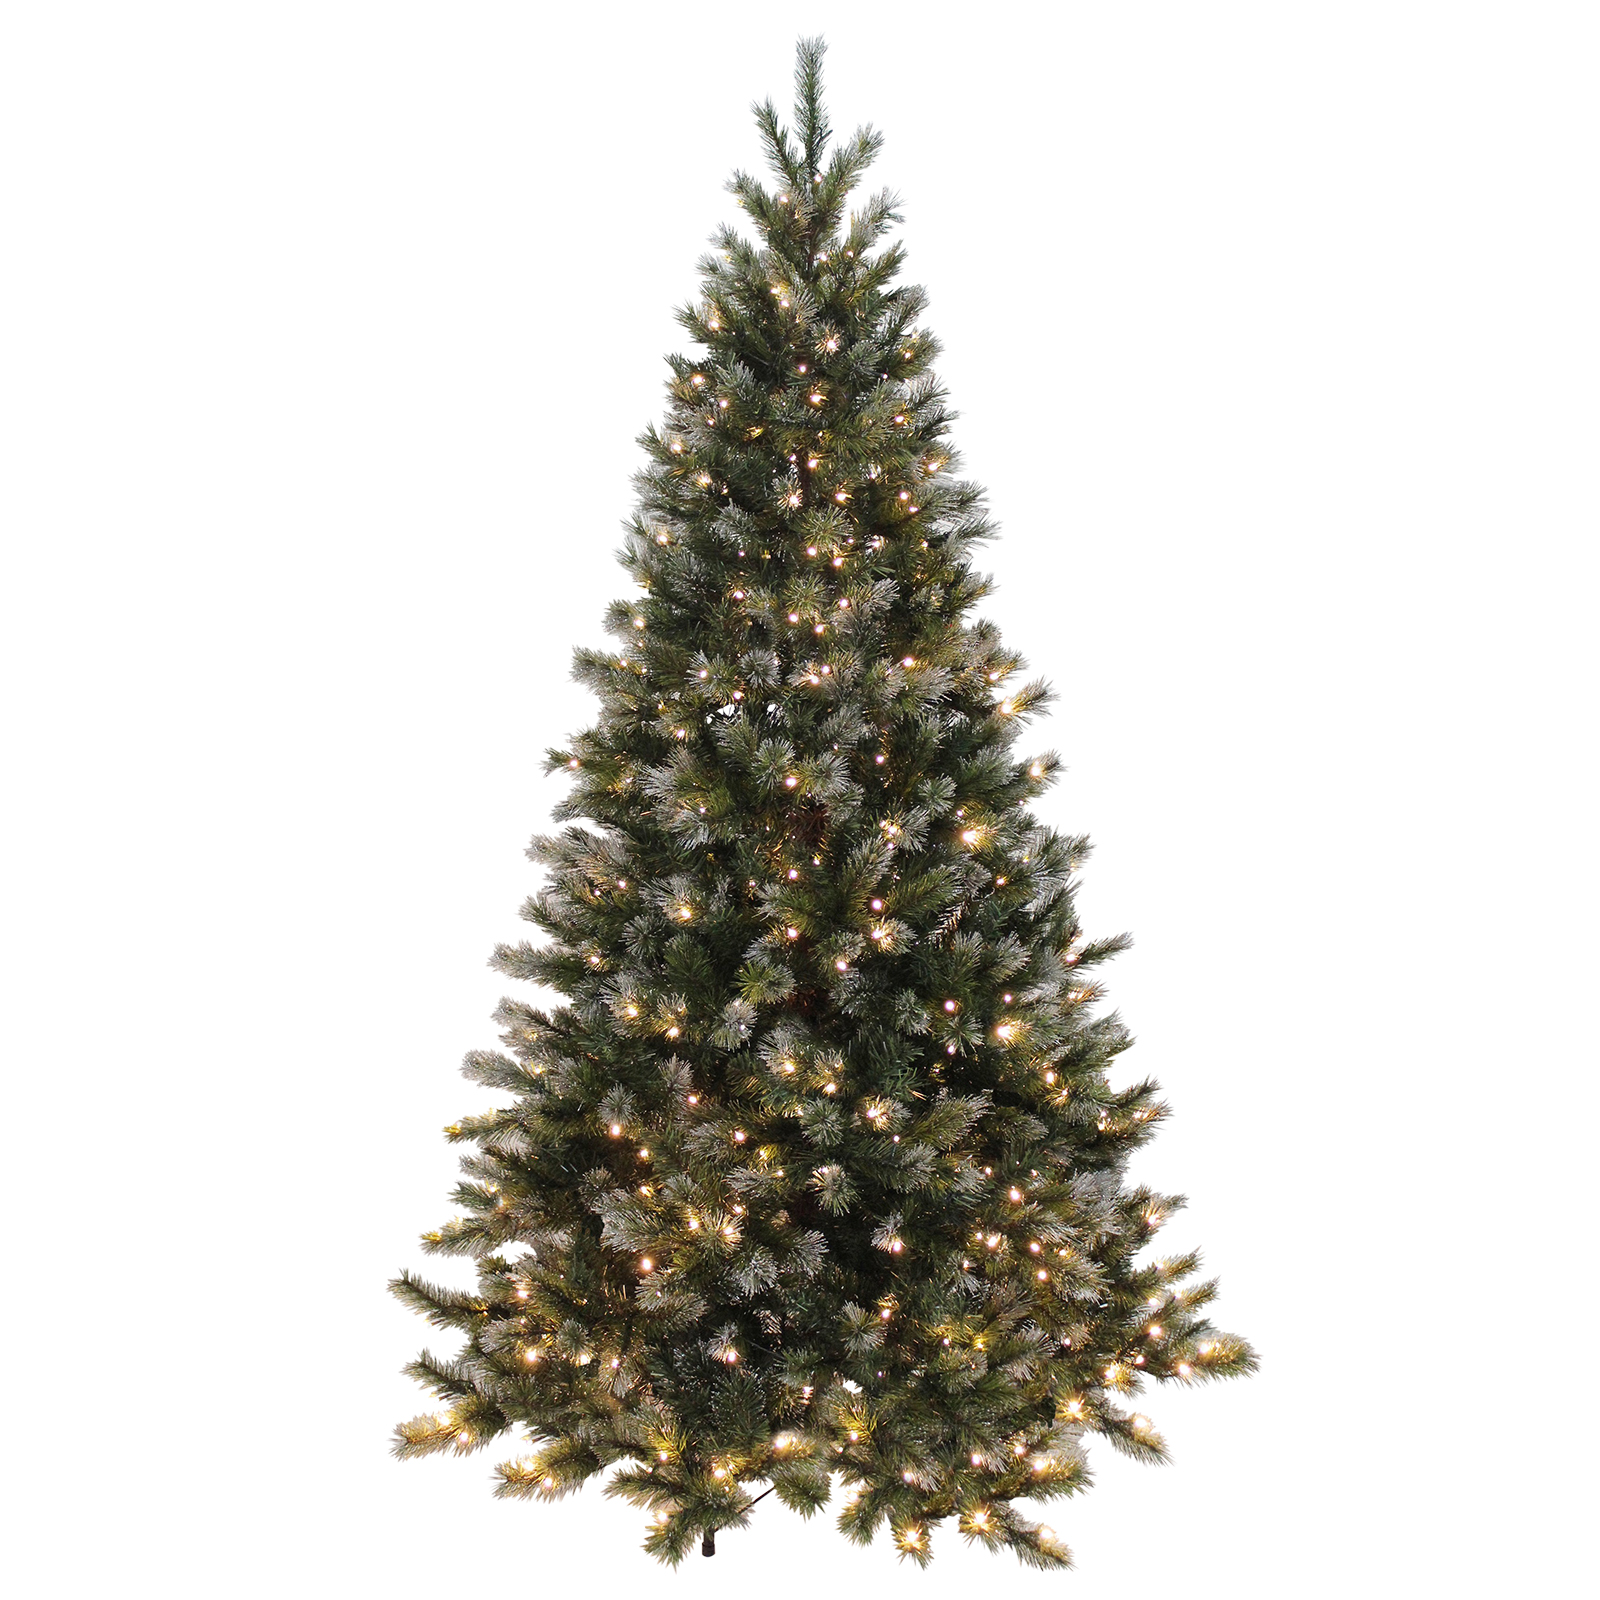 Green glitter pine artificial pre lit warm white lights